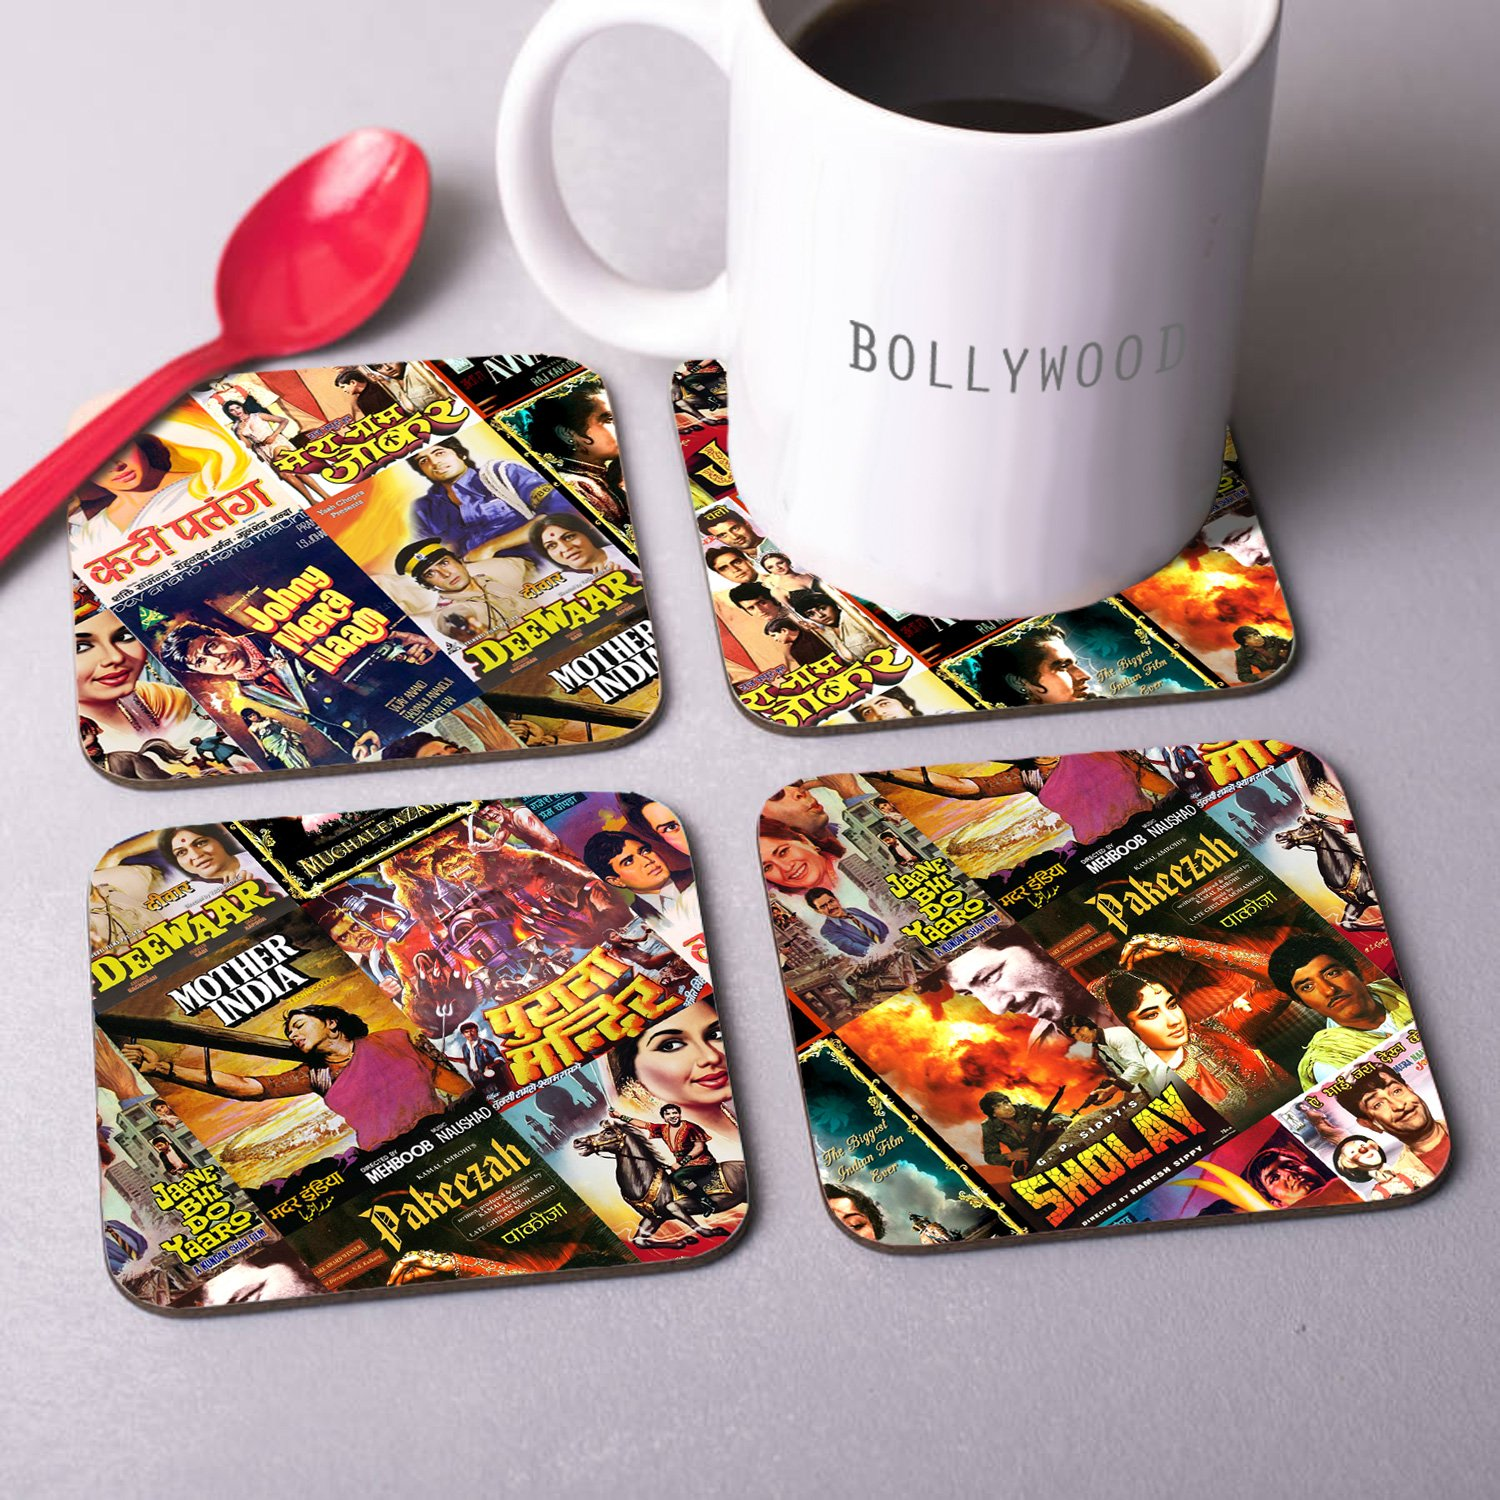 Bollywood Coasters With Poster Prints For Hindi Movie Fans - Set Of Four